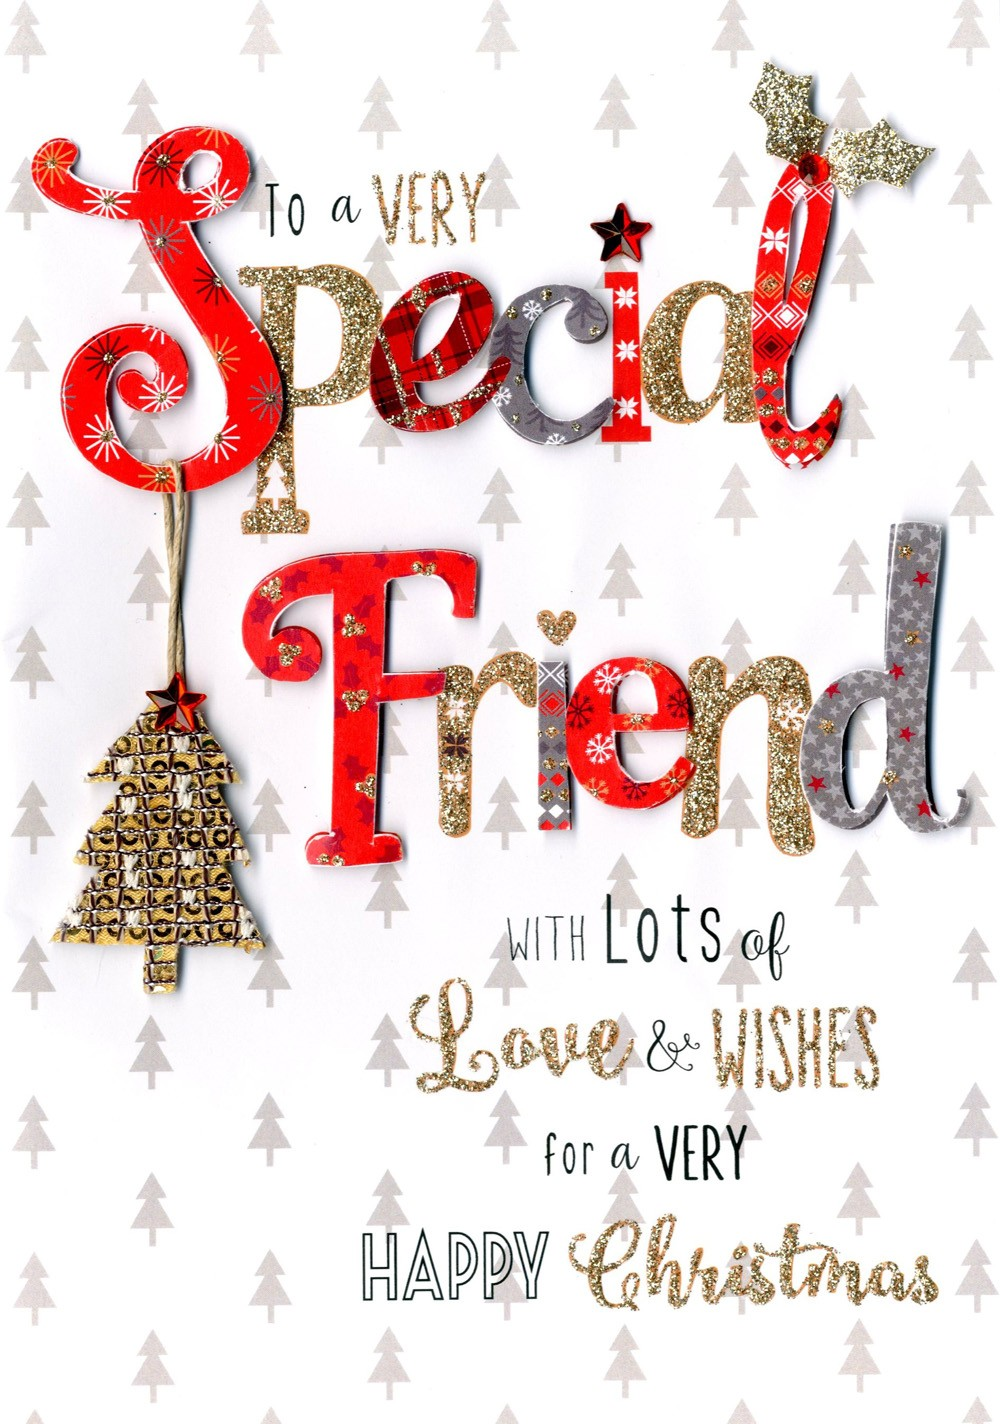 30 Christmas Greetings For A Friend To Make Them Happy Some Events